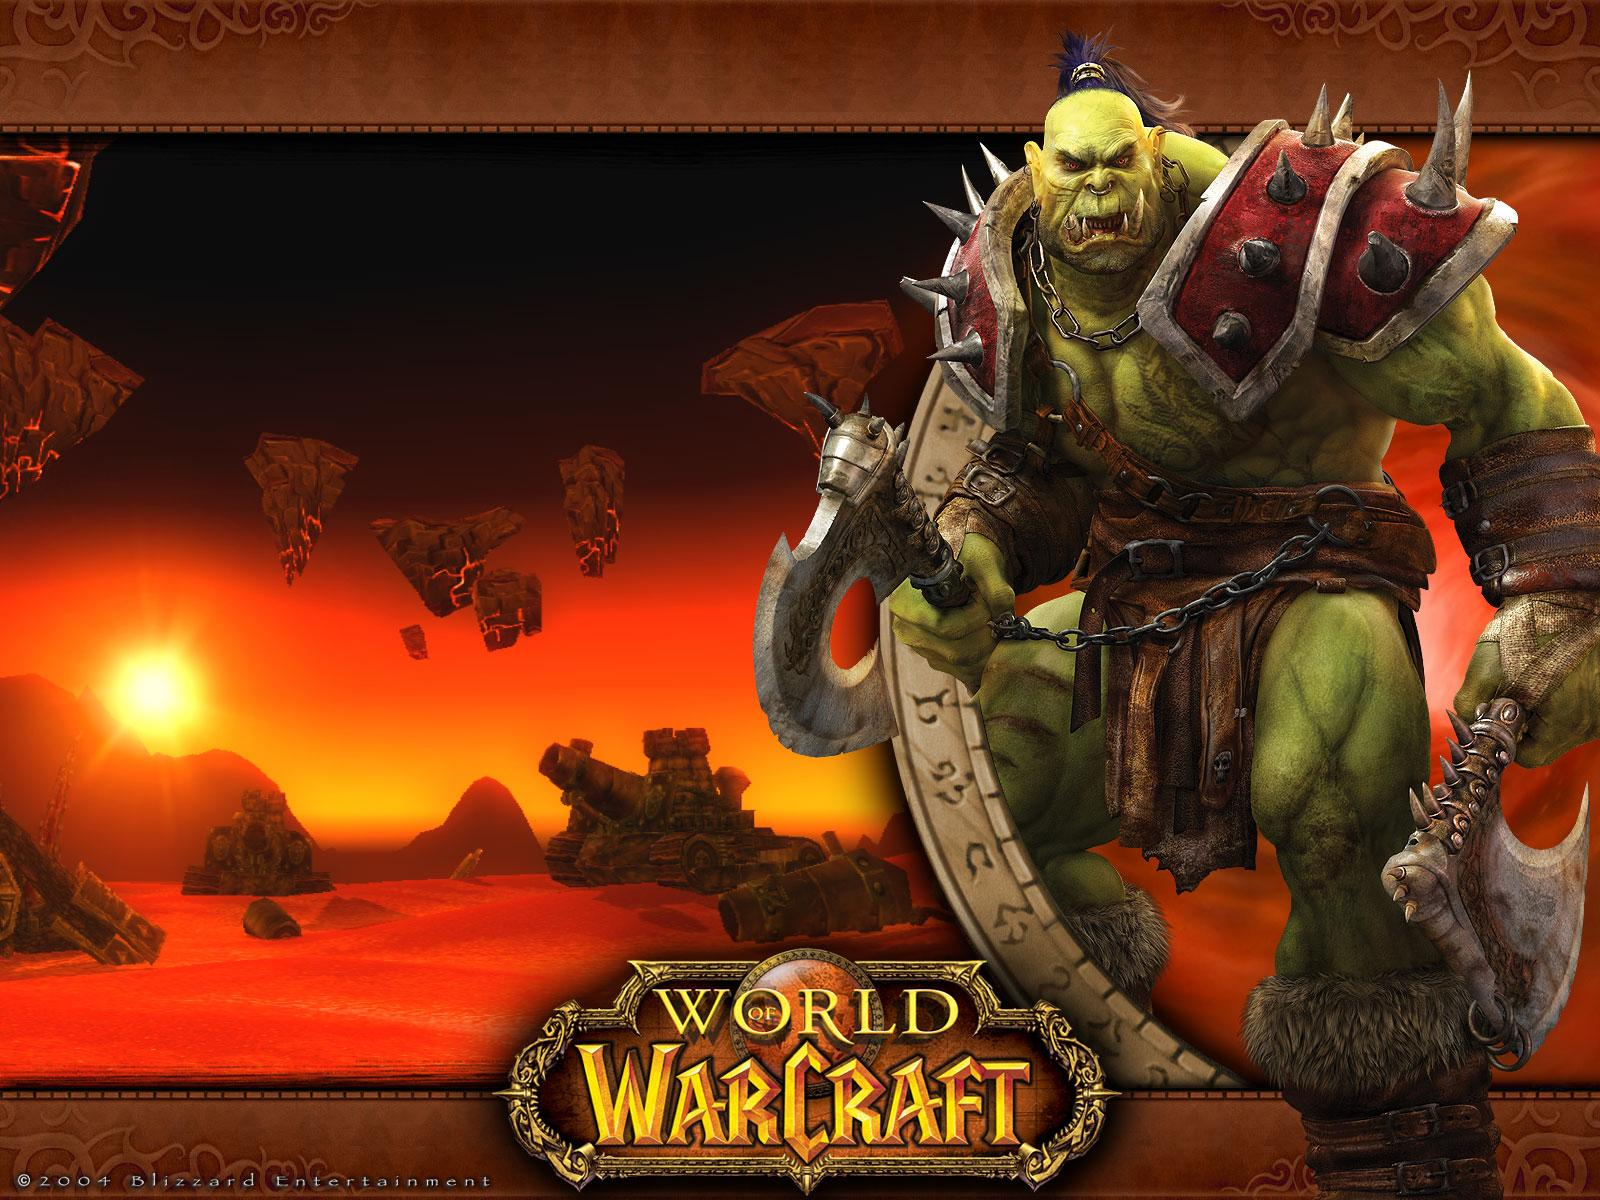 World of Warcraft movie slowly taking shape, Blizzard ...